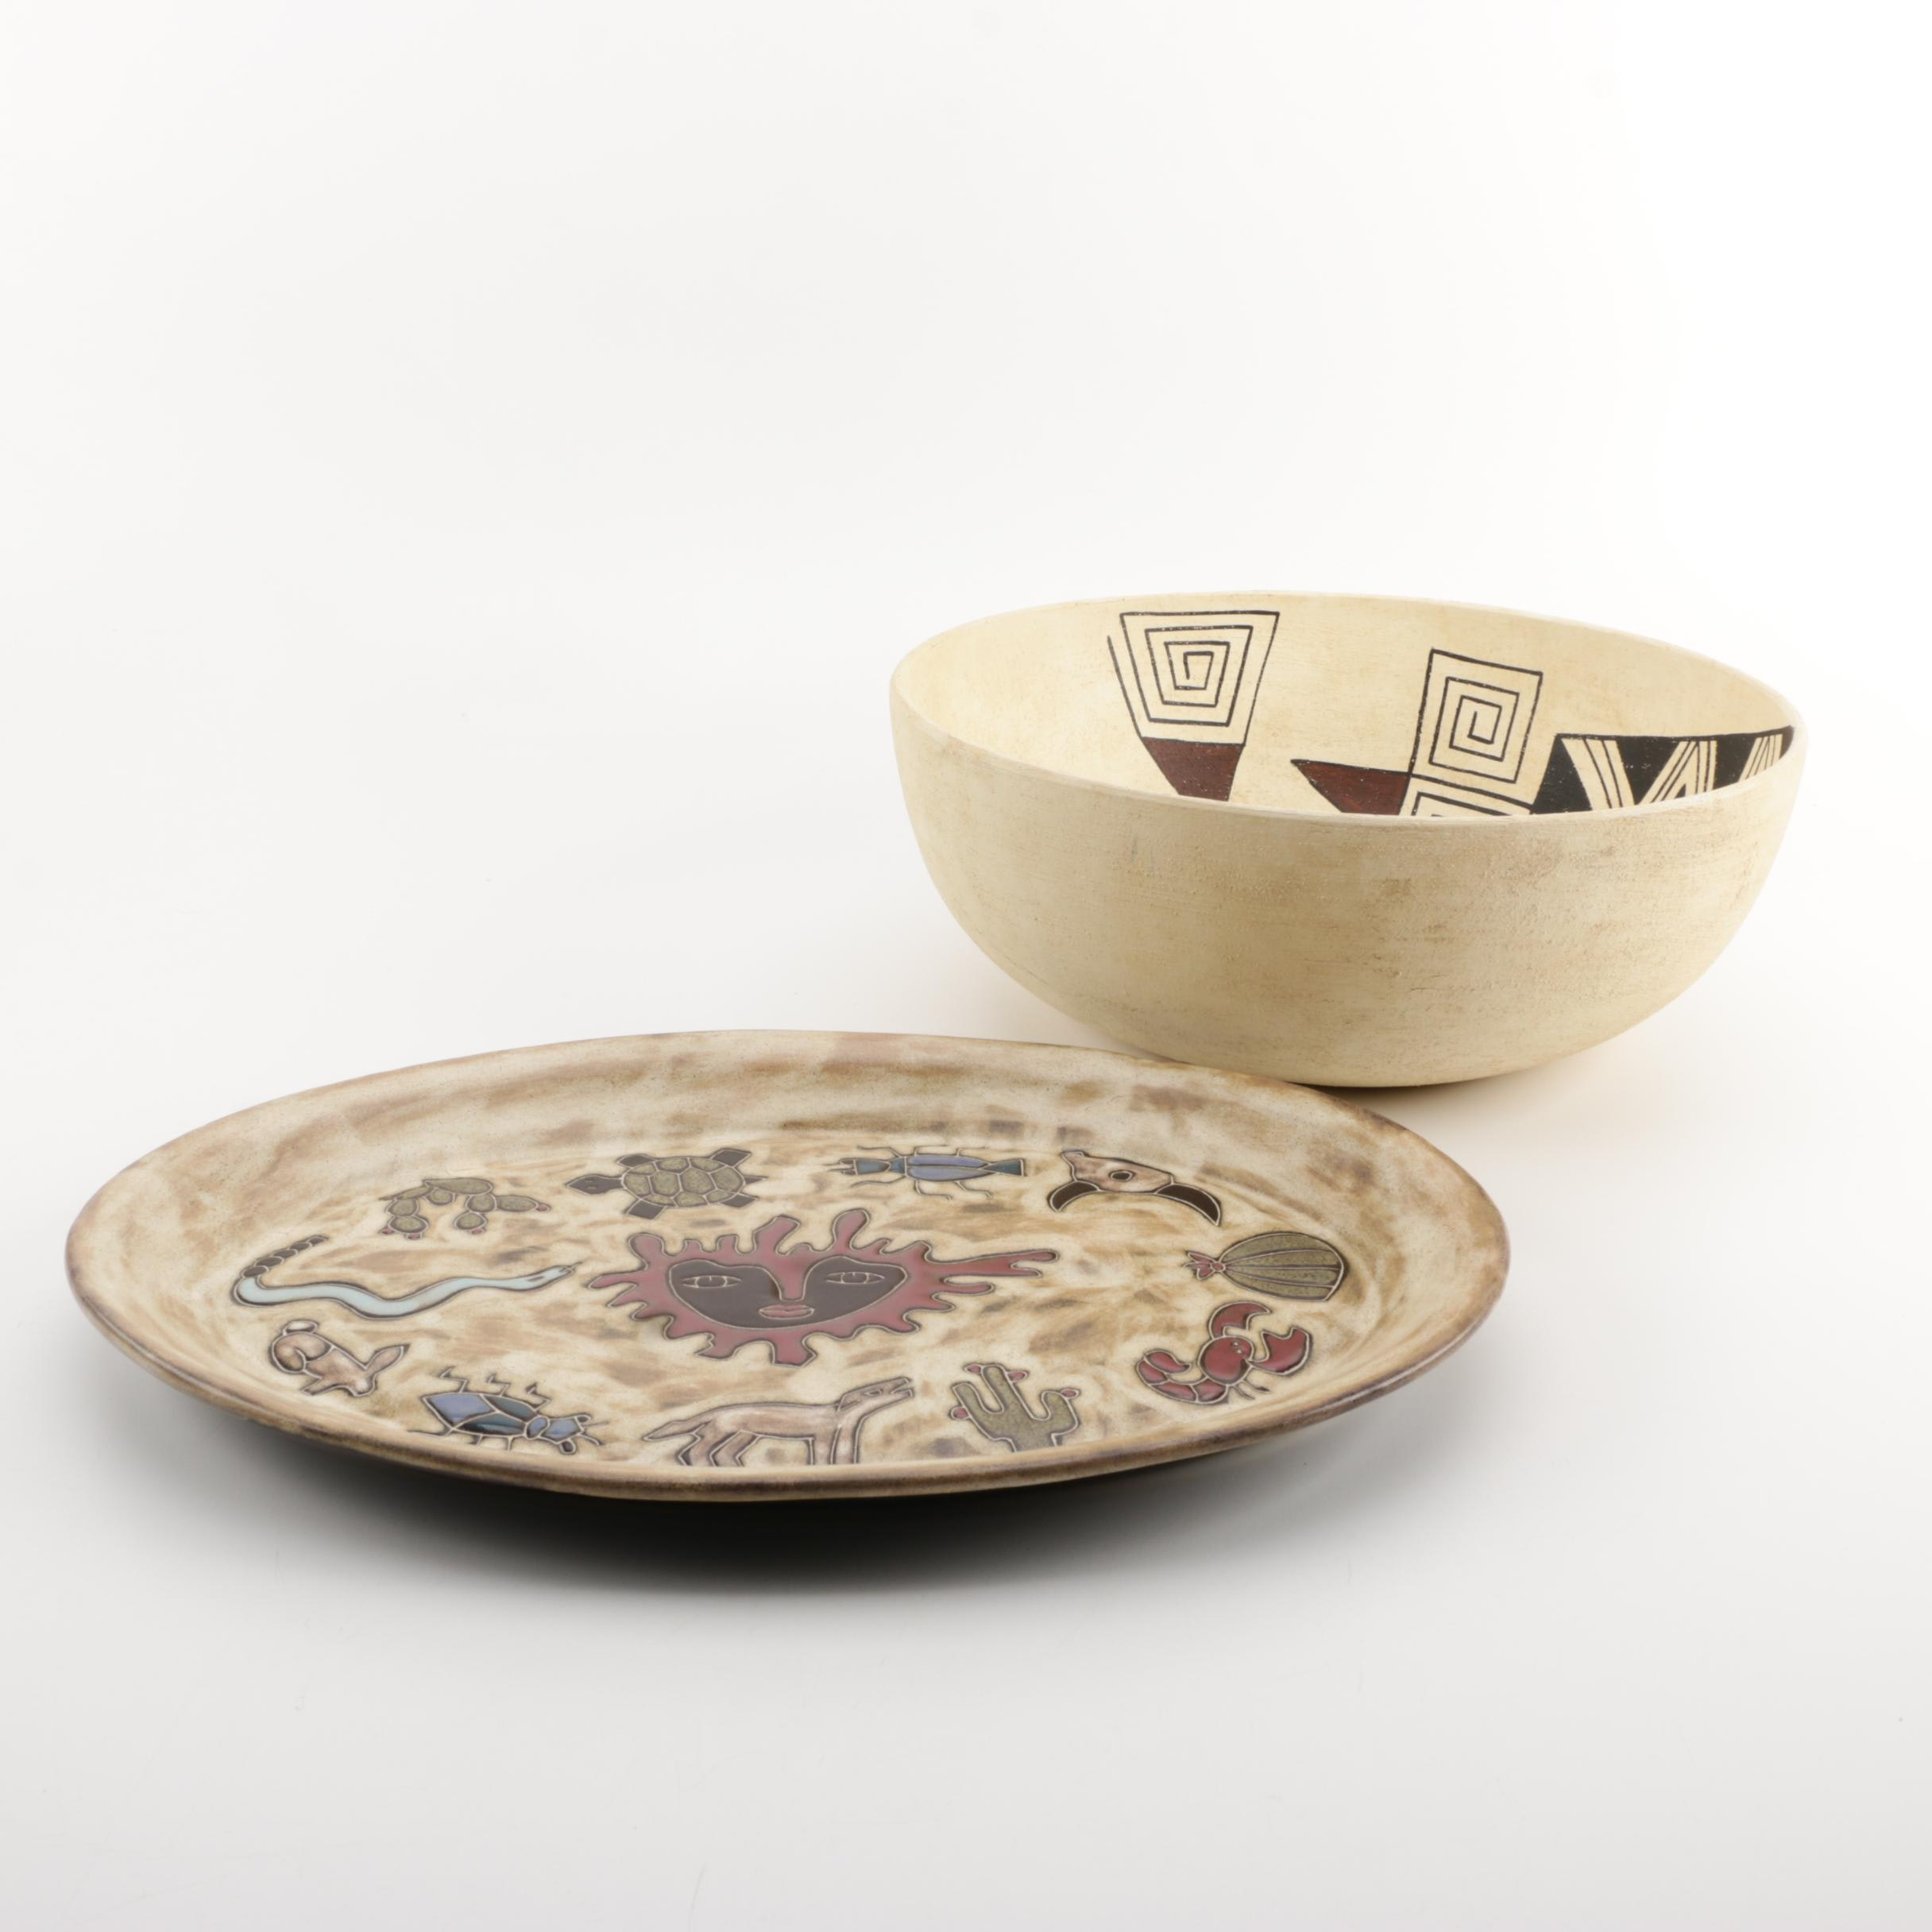 Mara Mexican Platter and Native American-Style Ceramic Bowl